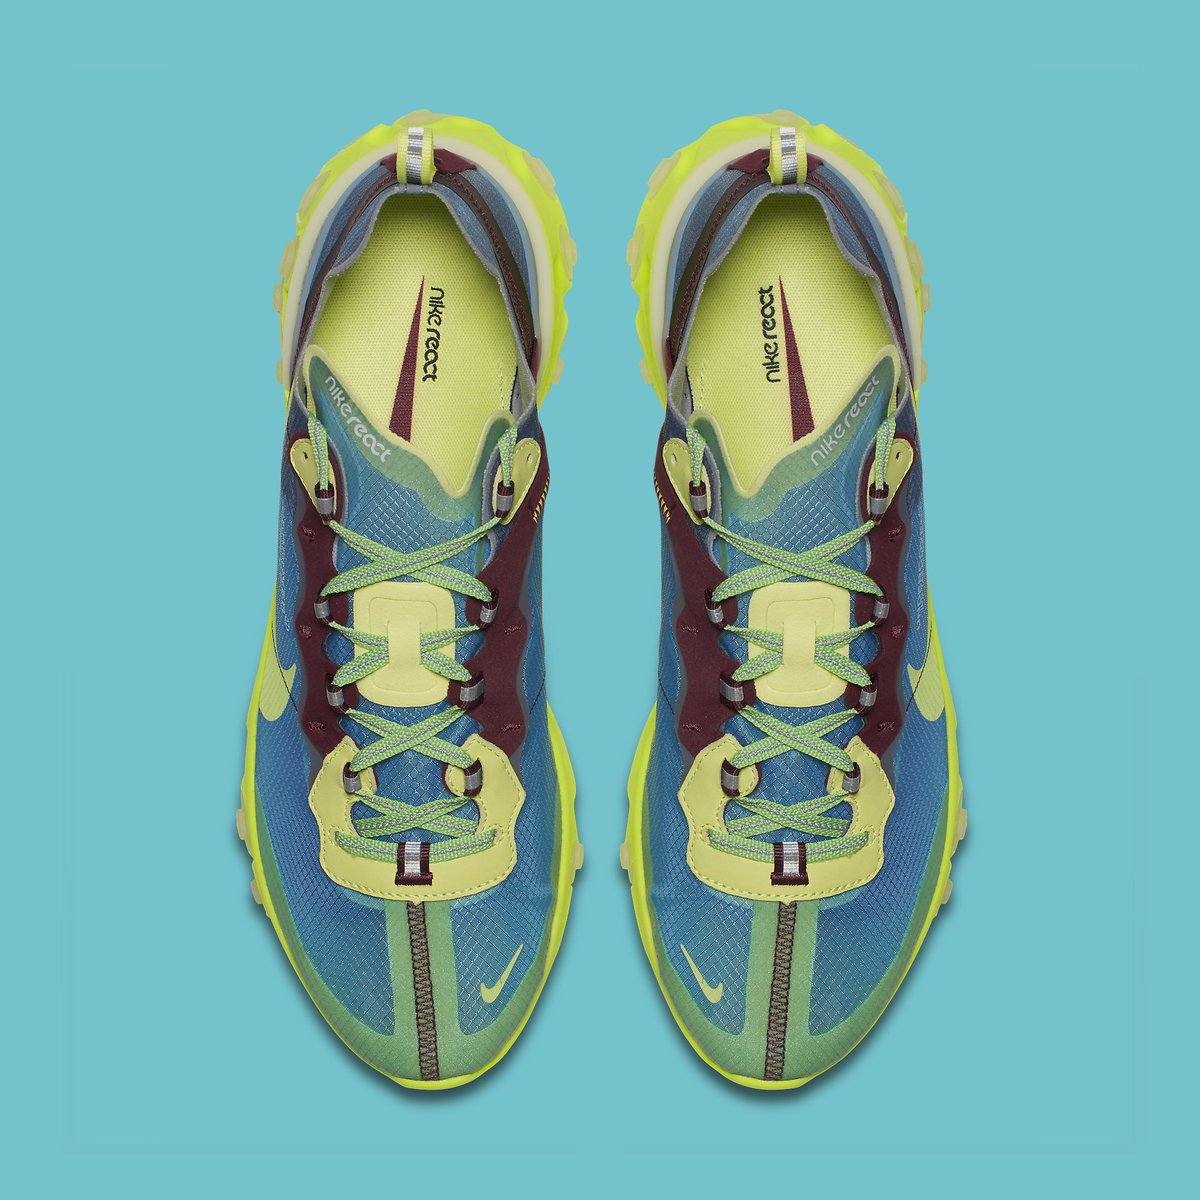 ab0b8ffb5cc8 undercover lab x Nike React Element 87. Lakeside Electric Yellow-Night  Maroon-Black Releasing September 13 for  180. undercoverlab ...